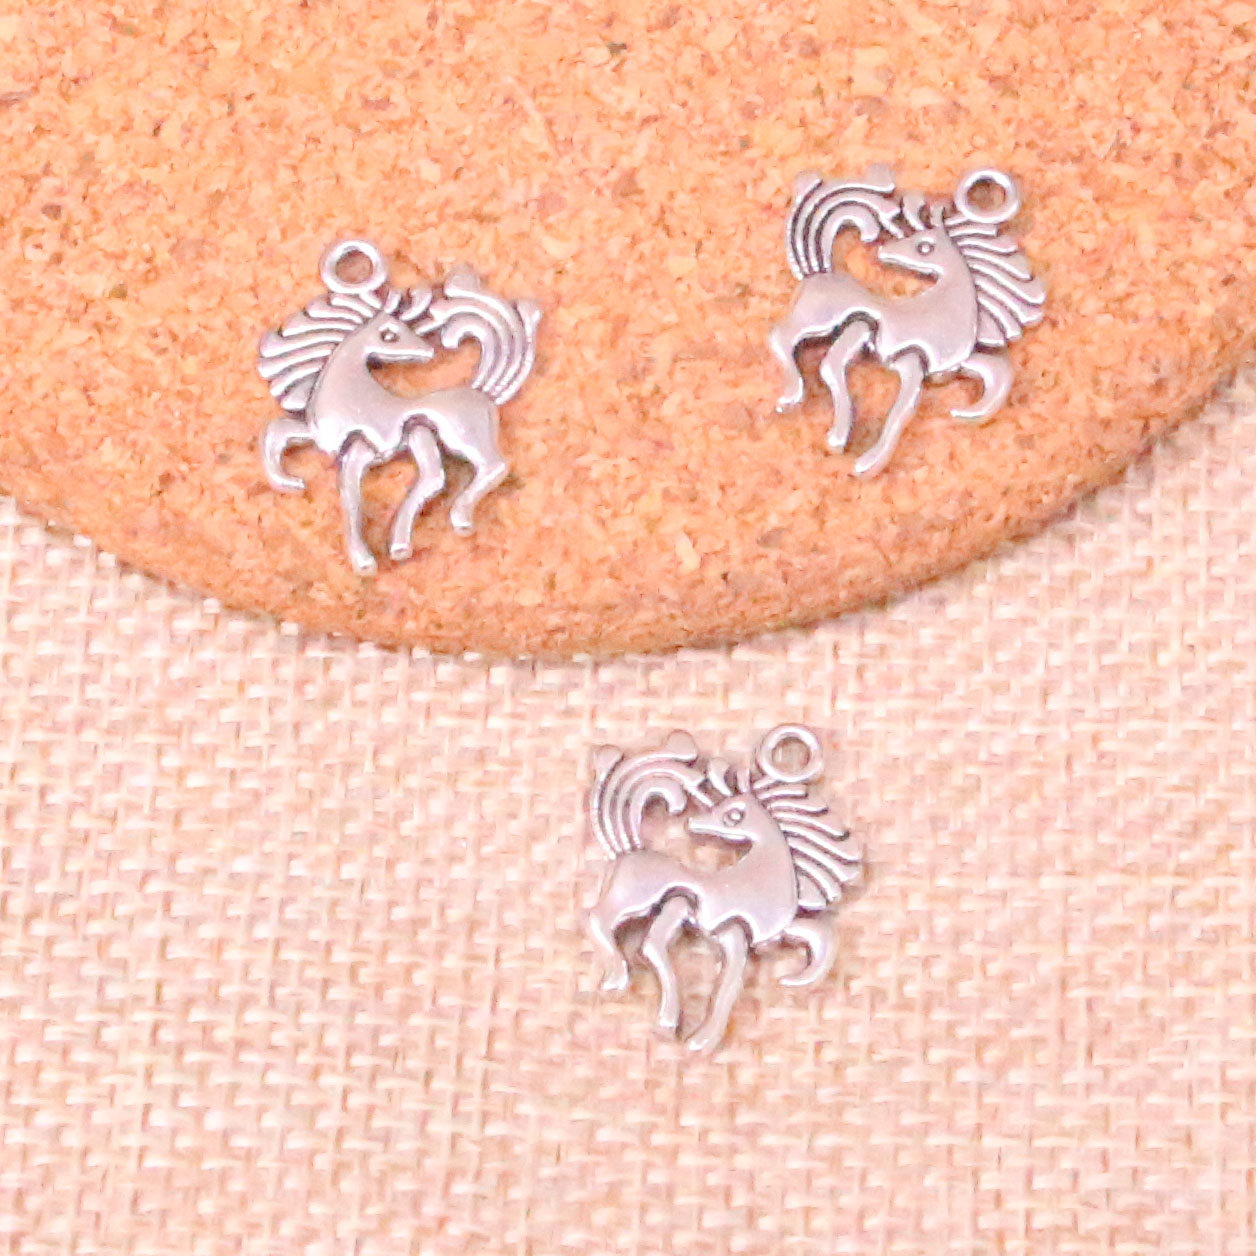 20pcs Antique Silver Unicorn Charms Pendants for Jewelry Making DIY 15x26mm